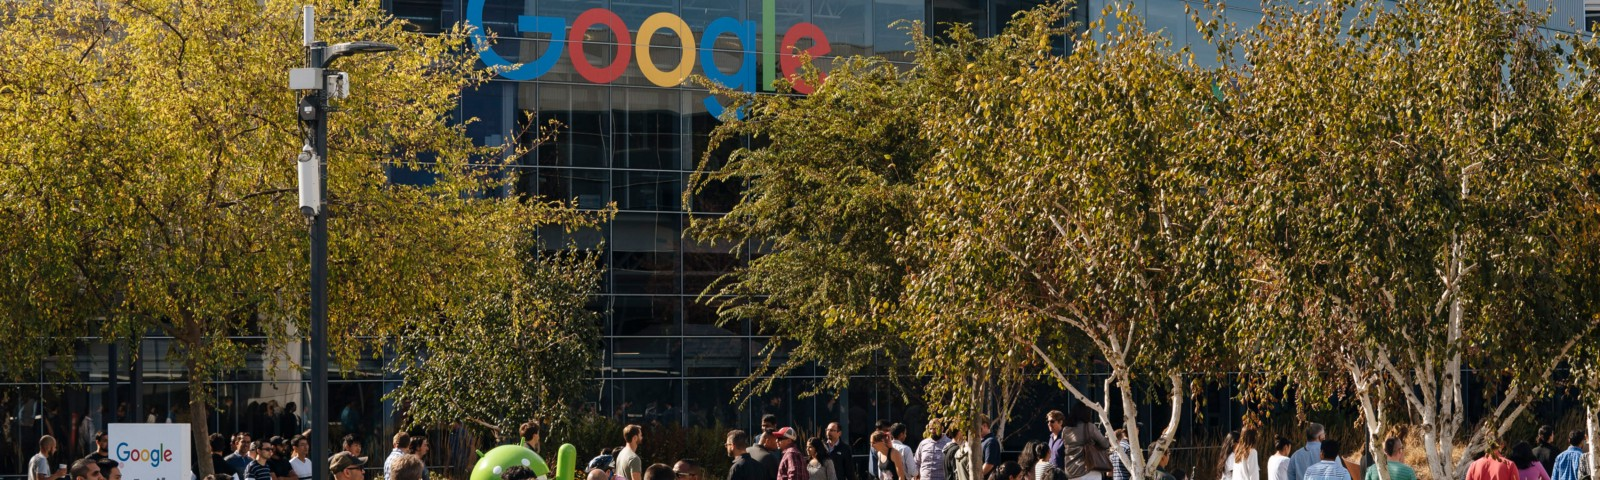 Revealed: Google's 'Two-Tier' Workforce Training Document